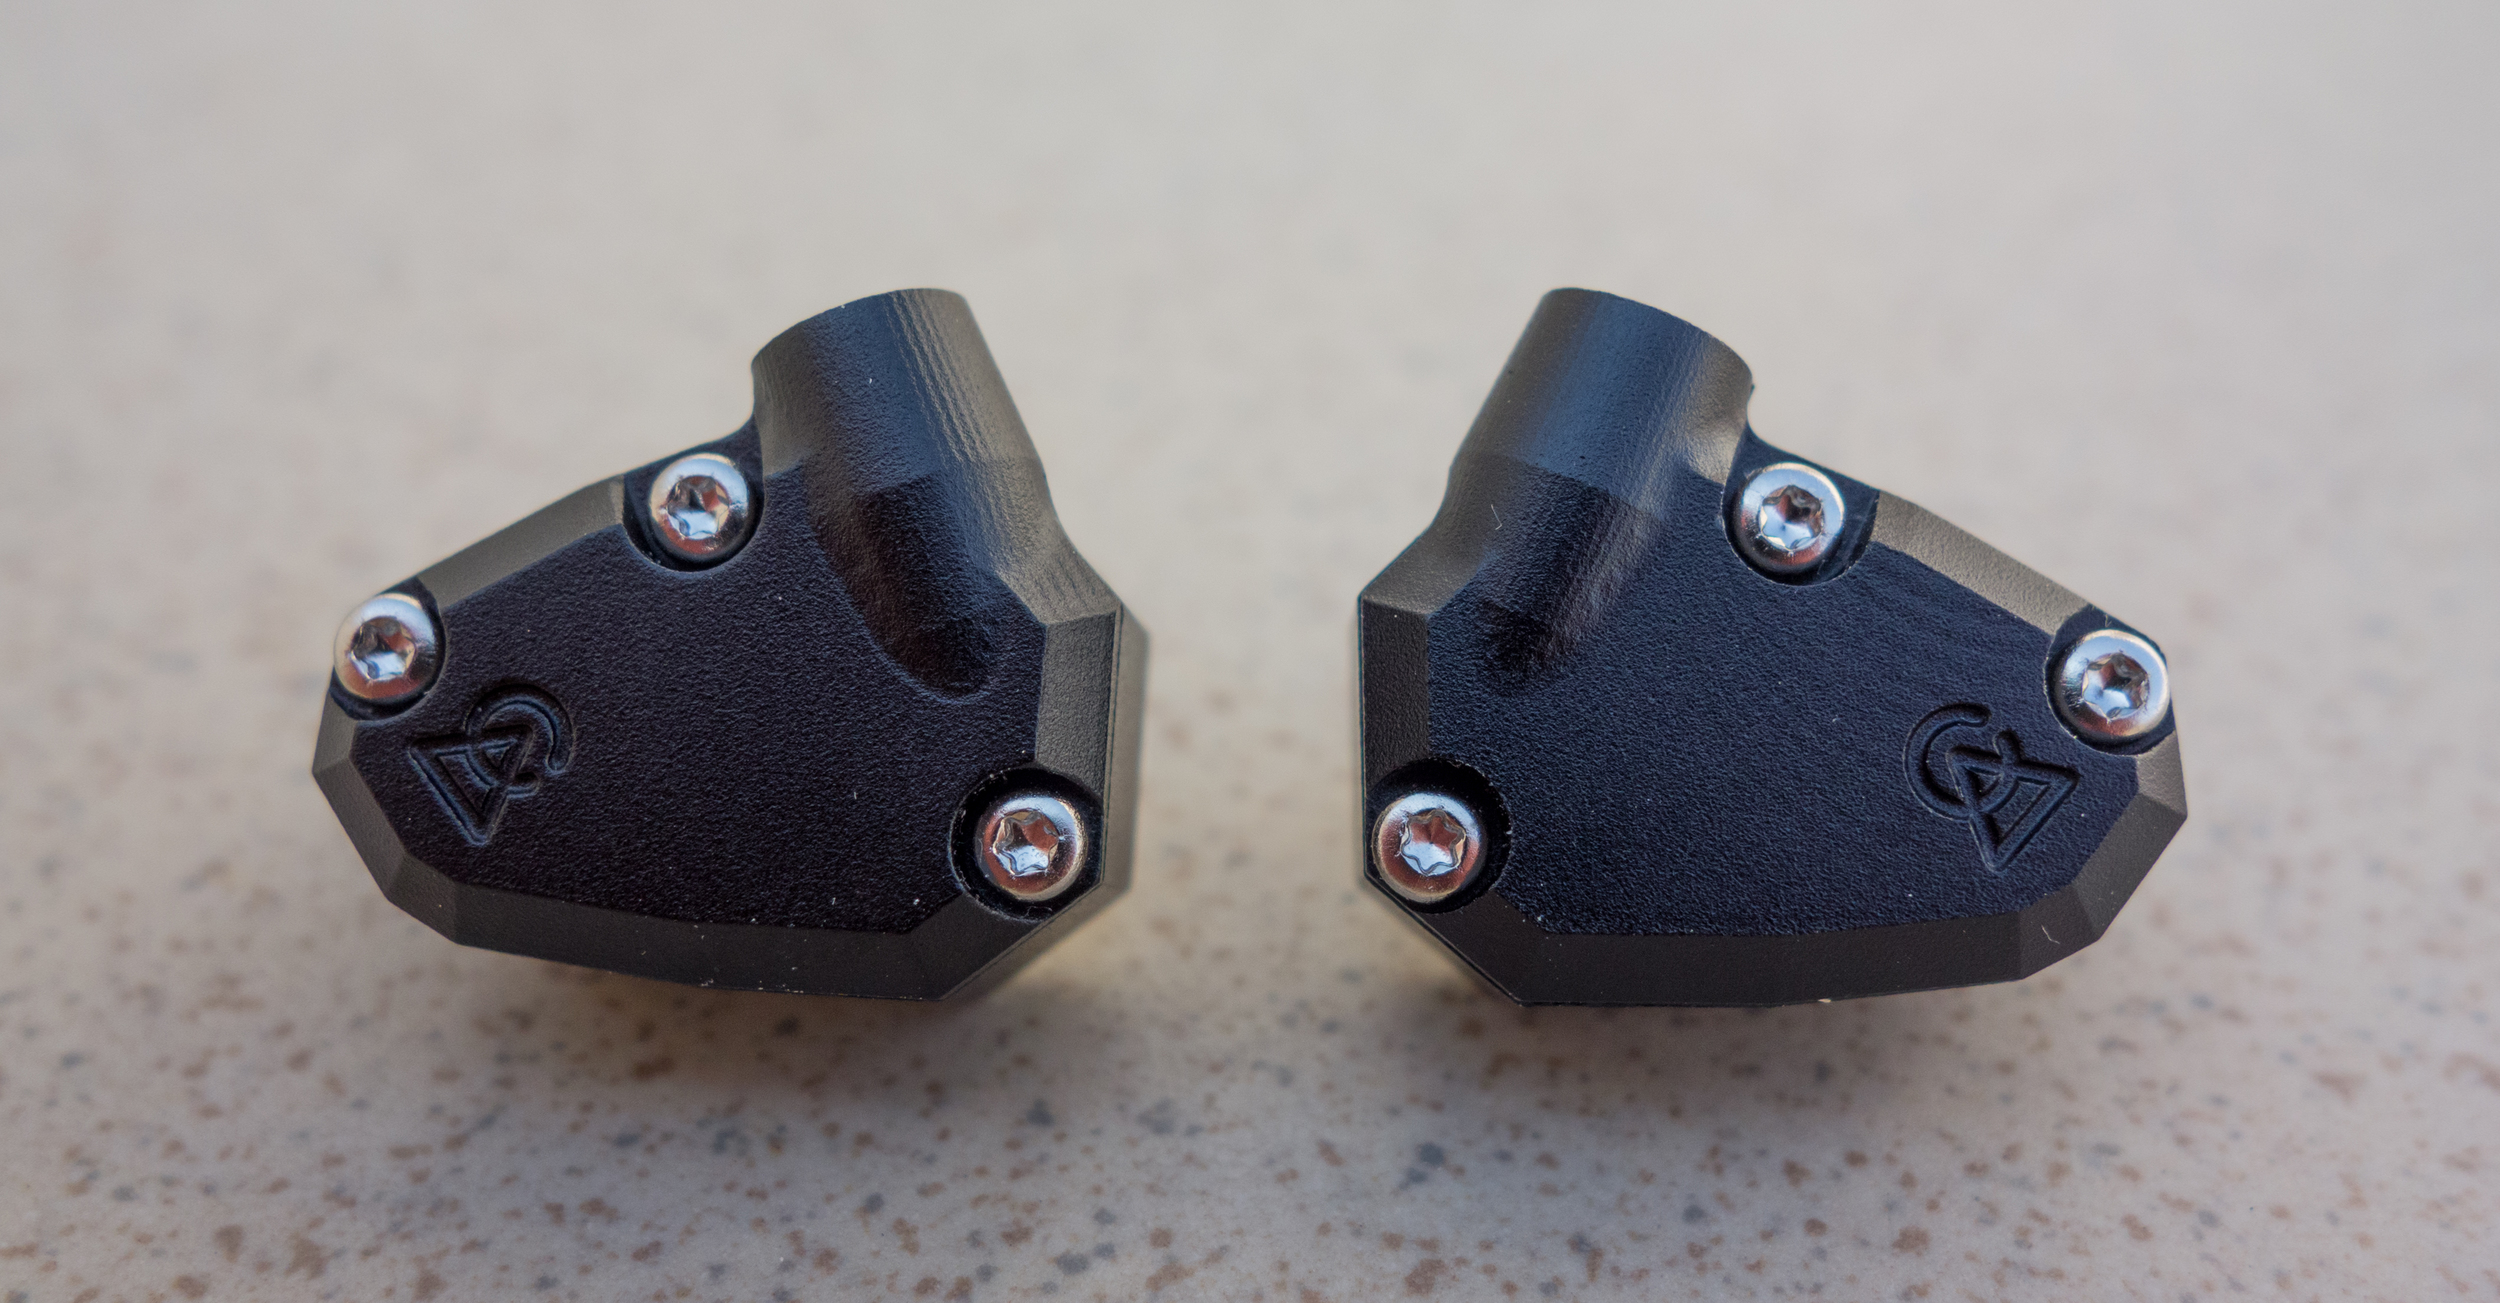 The Campfire Audio Orion IEM, one of the best earphones under $400.